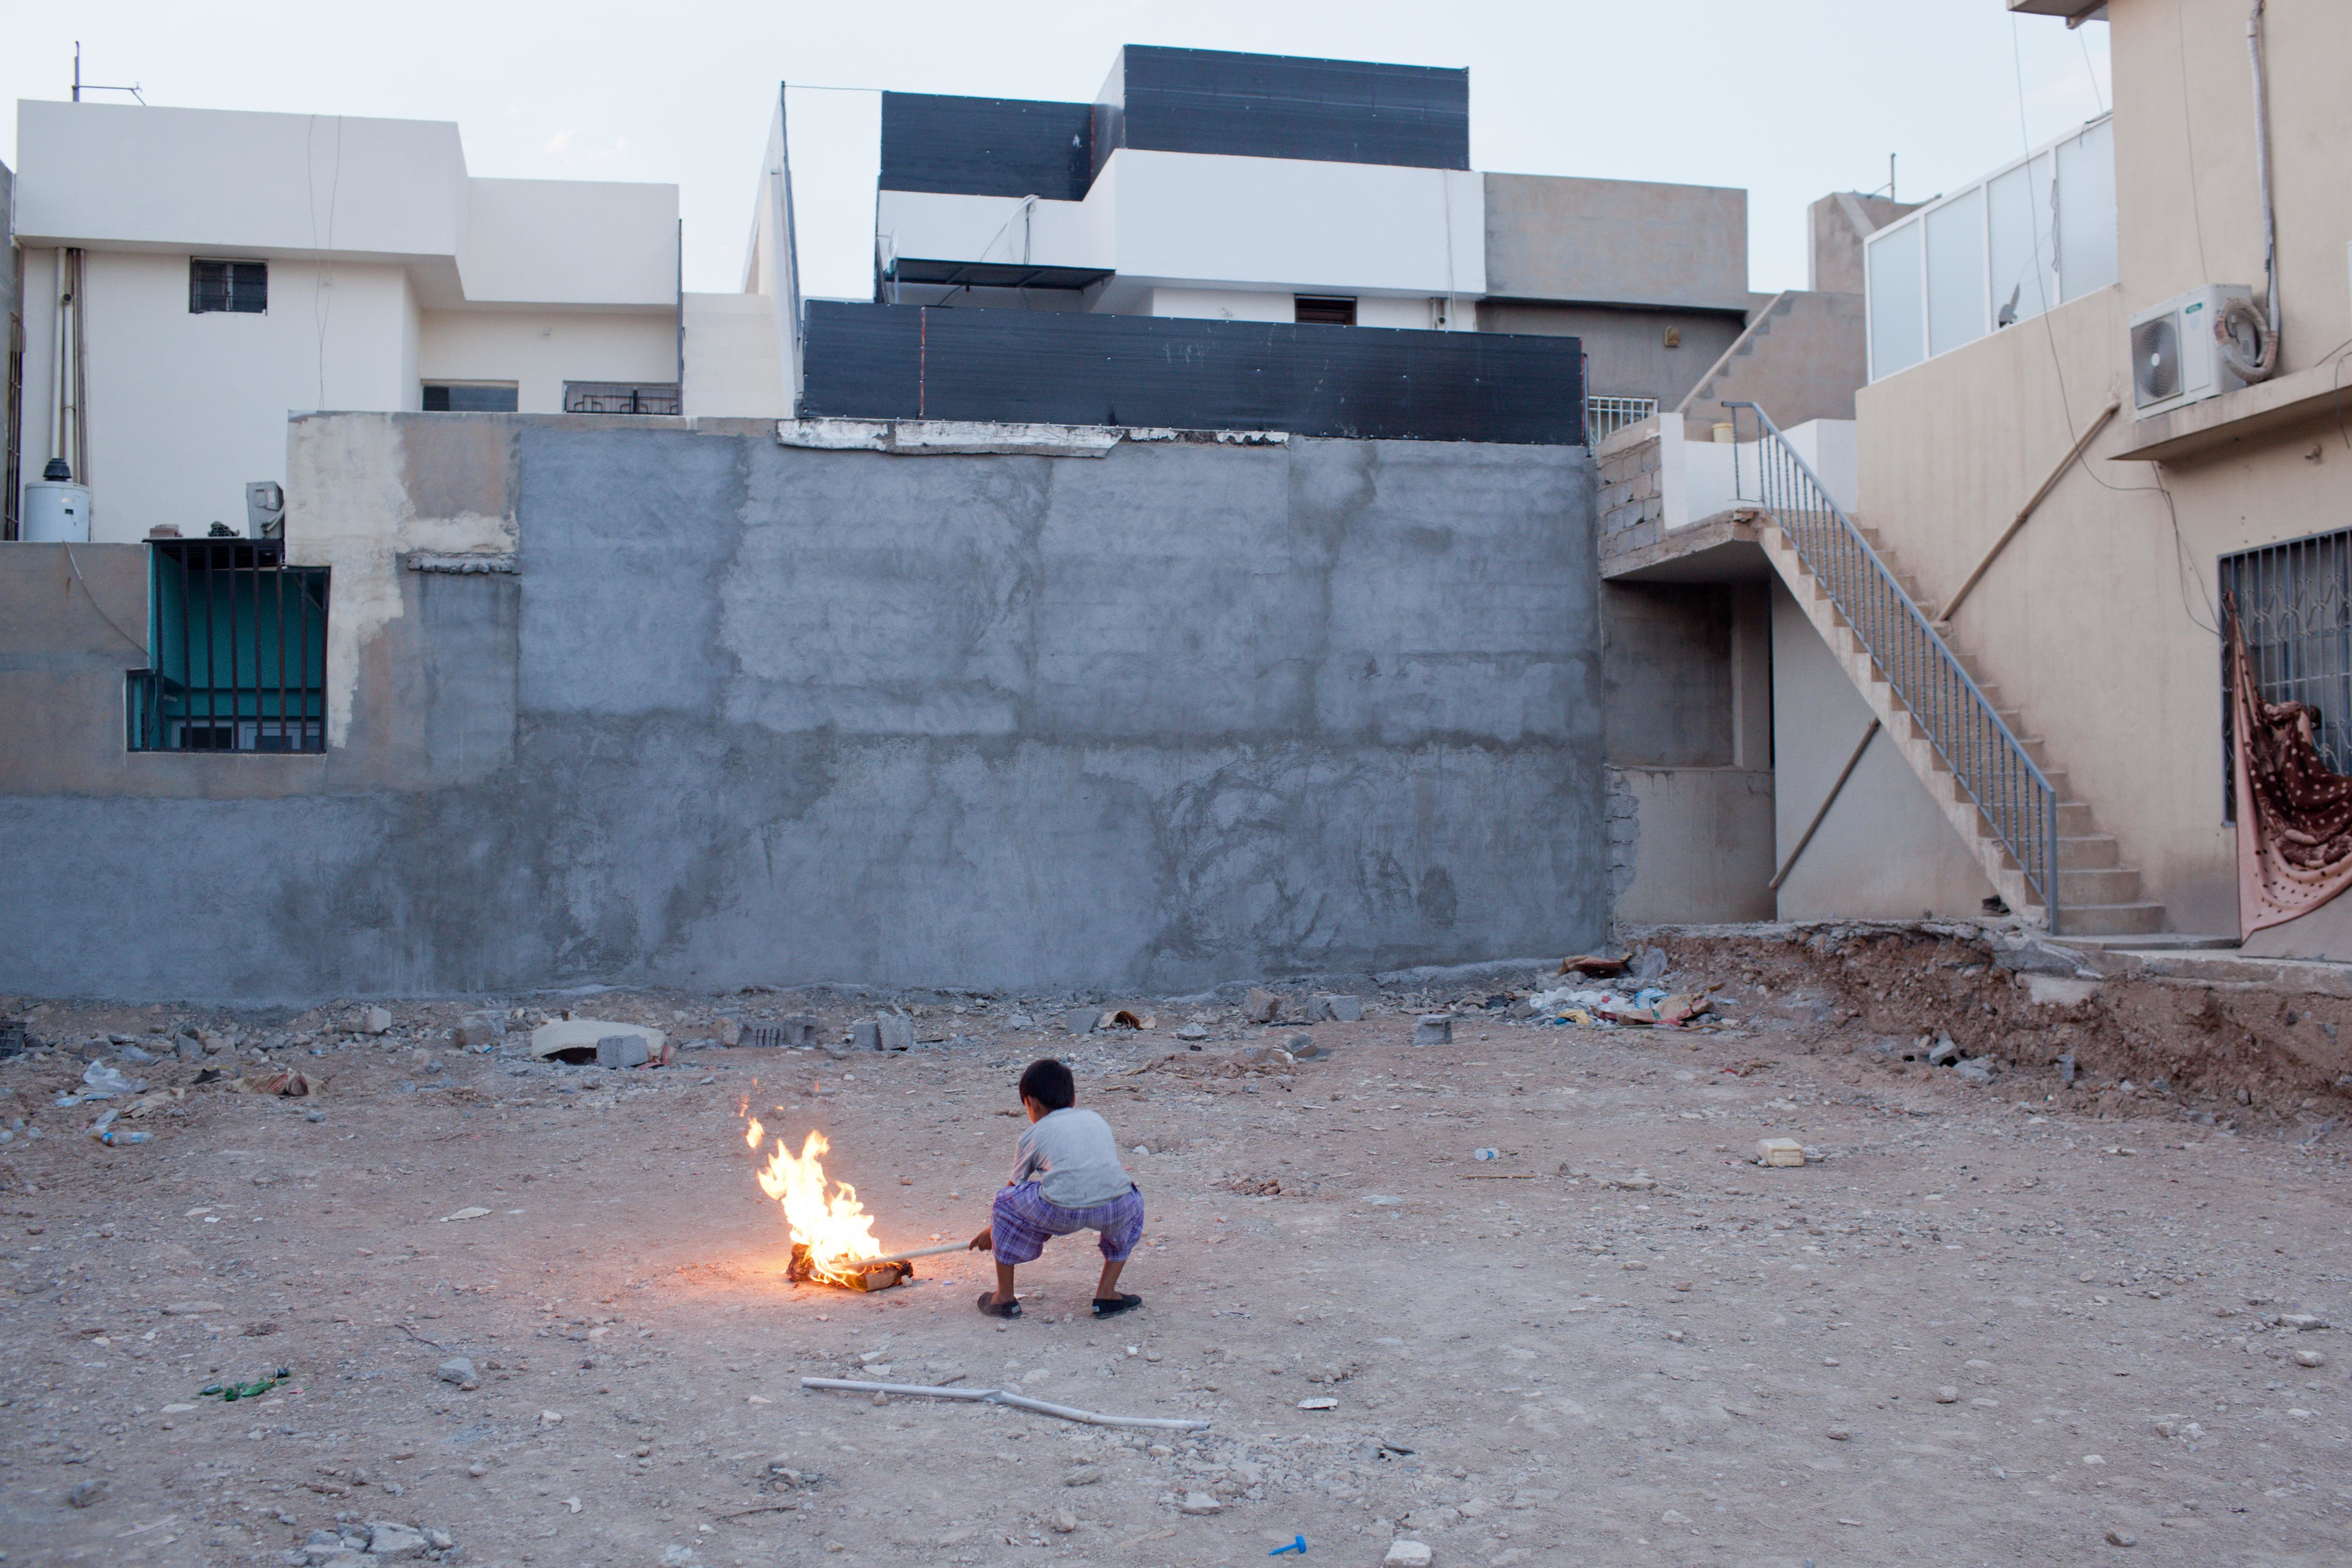 ERBIL, IRAQ: A young boy plays with burning garbage in an abandoned lot across the street from a camp for displaced Christians where he lives with his family. Photograph by Sebastian Meyer